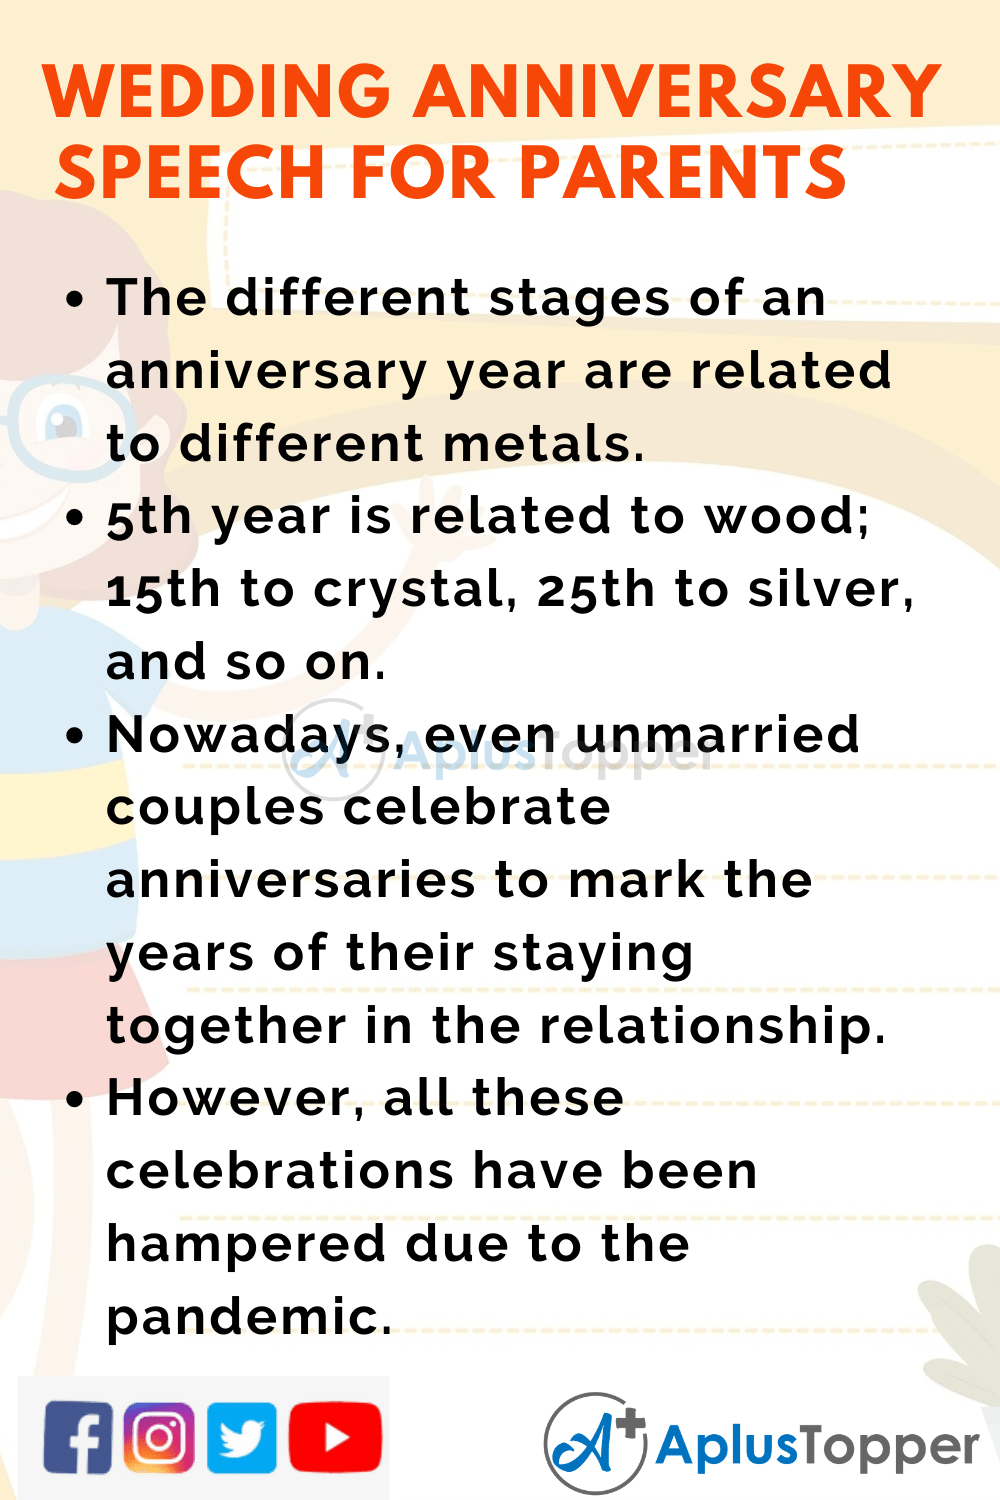 Short Speech On Wedding Anniversary for Parents 150 Words in English